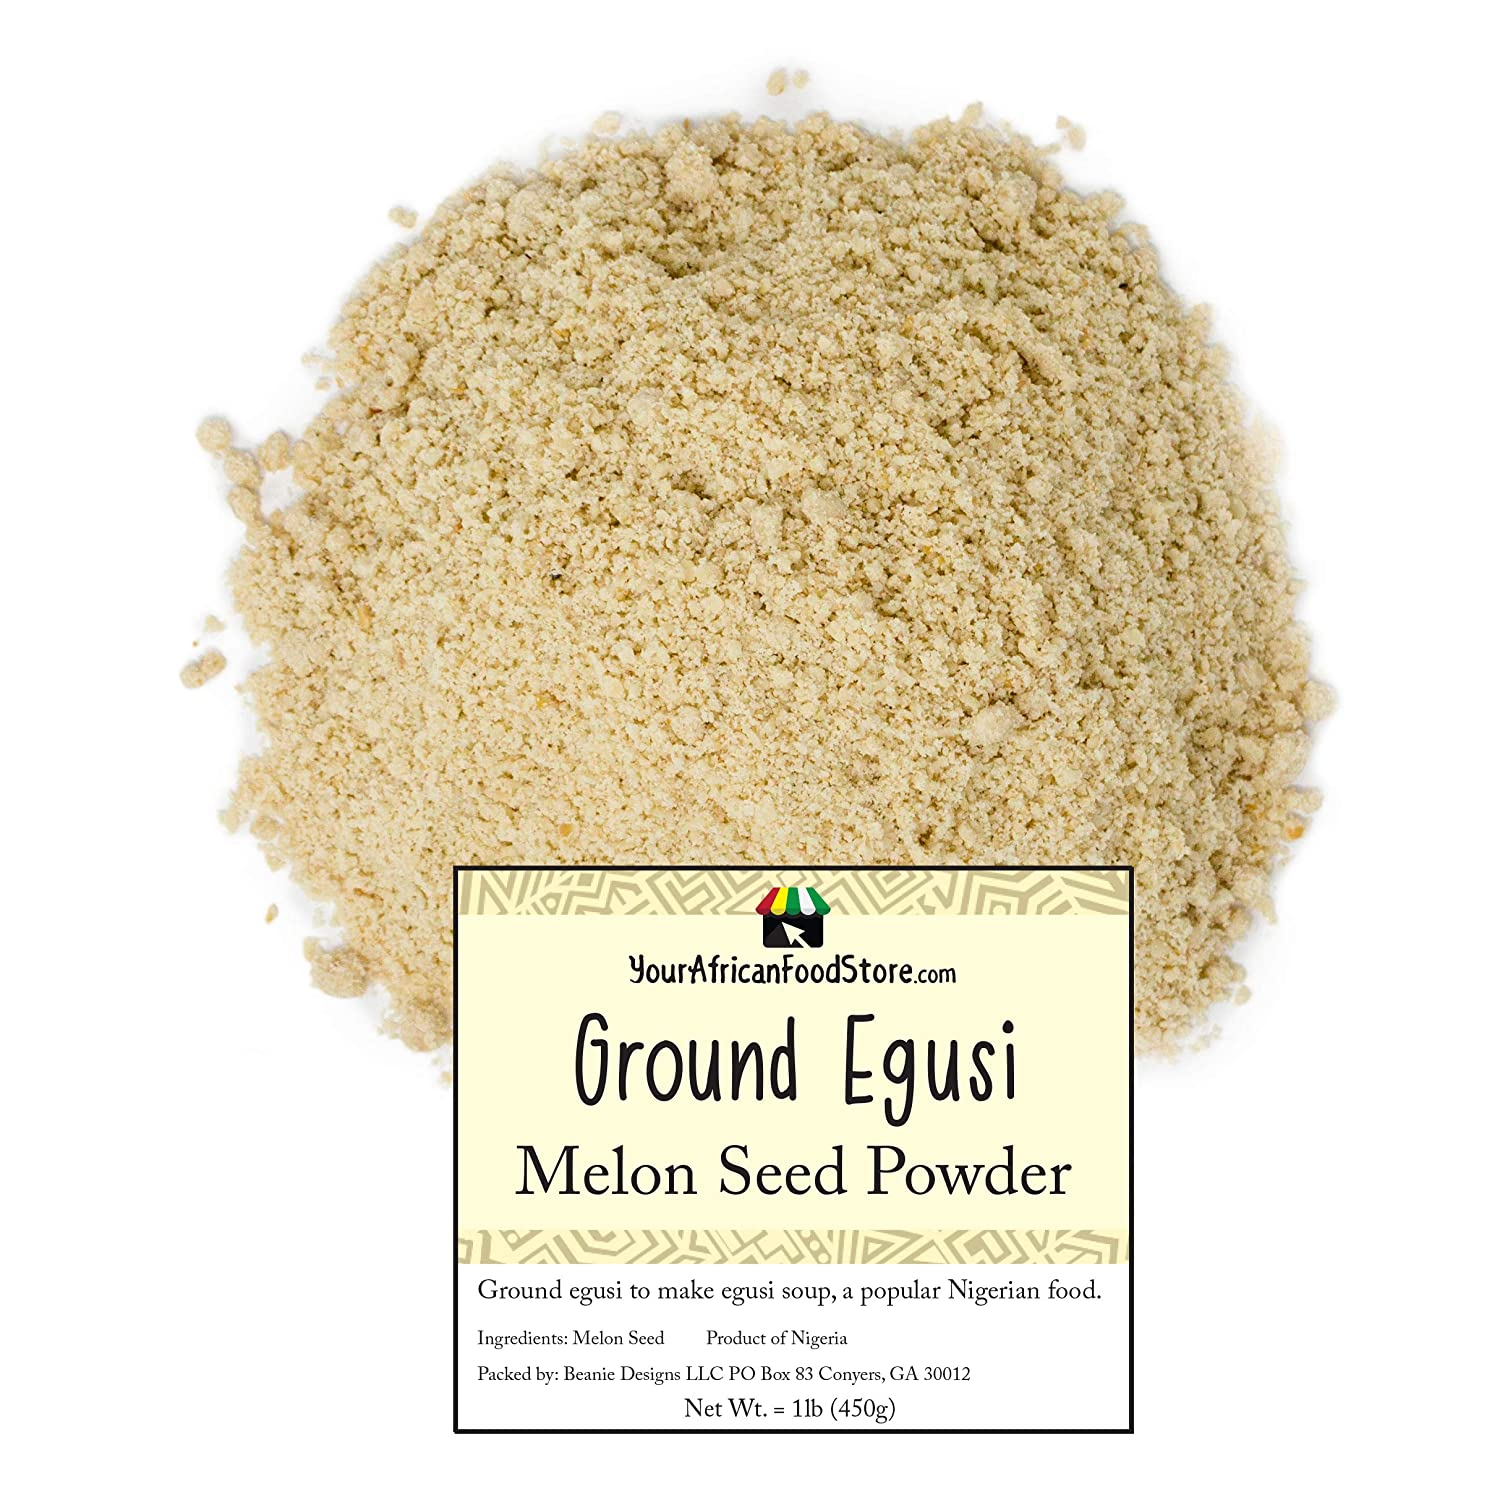 Amazon Com Nigerian Egusi Seeds Ground Egusi Powder For Egusi Soup Nigerian Seasoning African Food 500g 1 Pound Grocery Gourmet Food